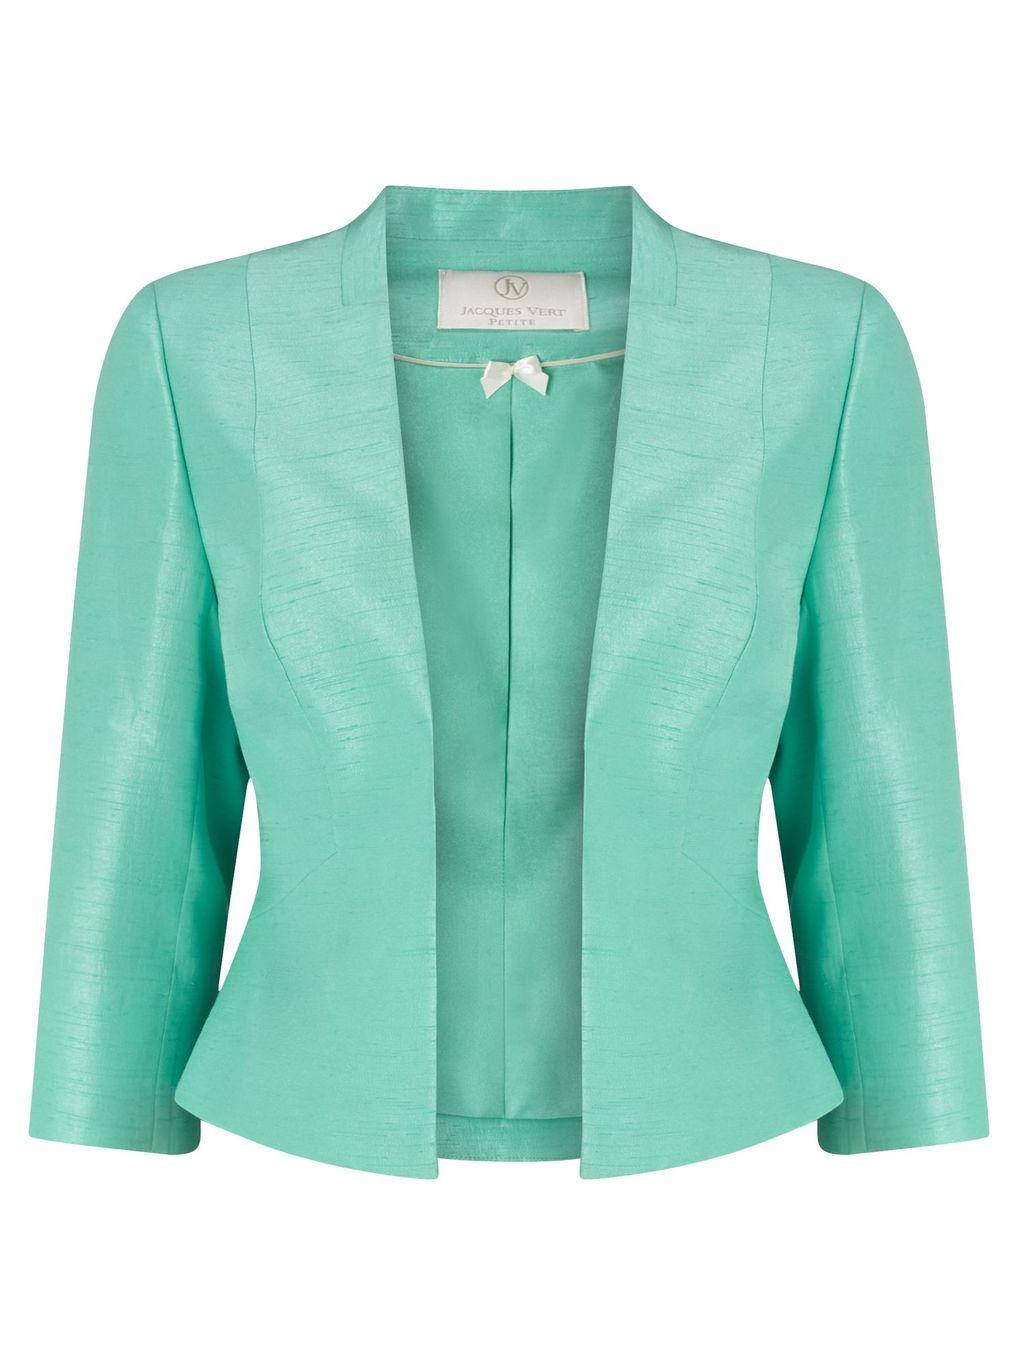 Petite Notch Neck Jacket, Green - pattern: plain; style: single breasted blazer; collar: round collar/collarless; predominant colour: pistachio; length: standard; fit: tailored/fitted; fibres: silk - 100%; occasions: occasion; sleeve length: 3/4 length; sleeve style: standard; texture group: structured shiny - satin/tafetta/silk etc.; collar break: low/open; pattern type: fabric; season: s/s 2016; wardrobe: event